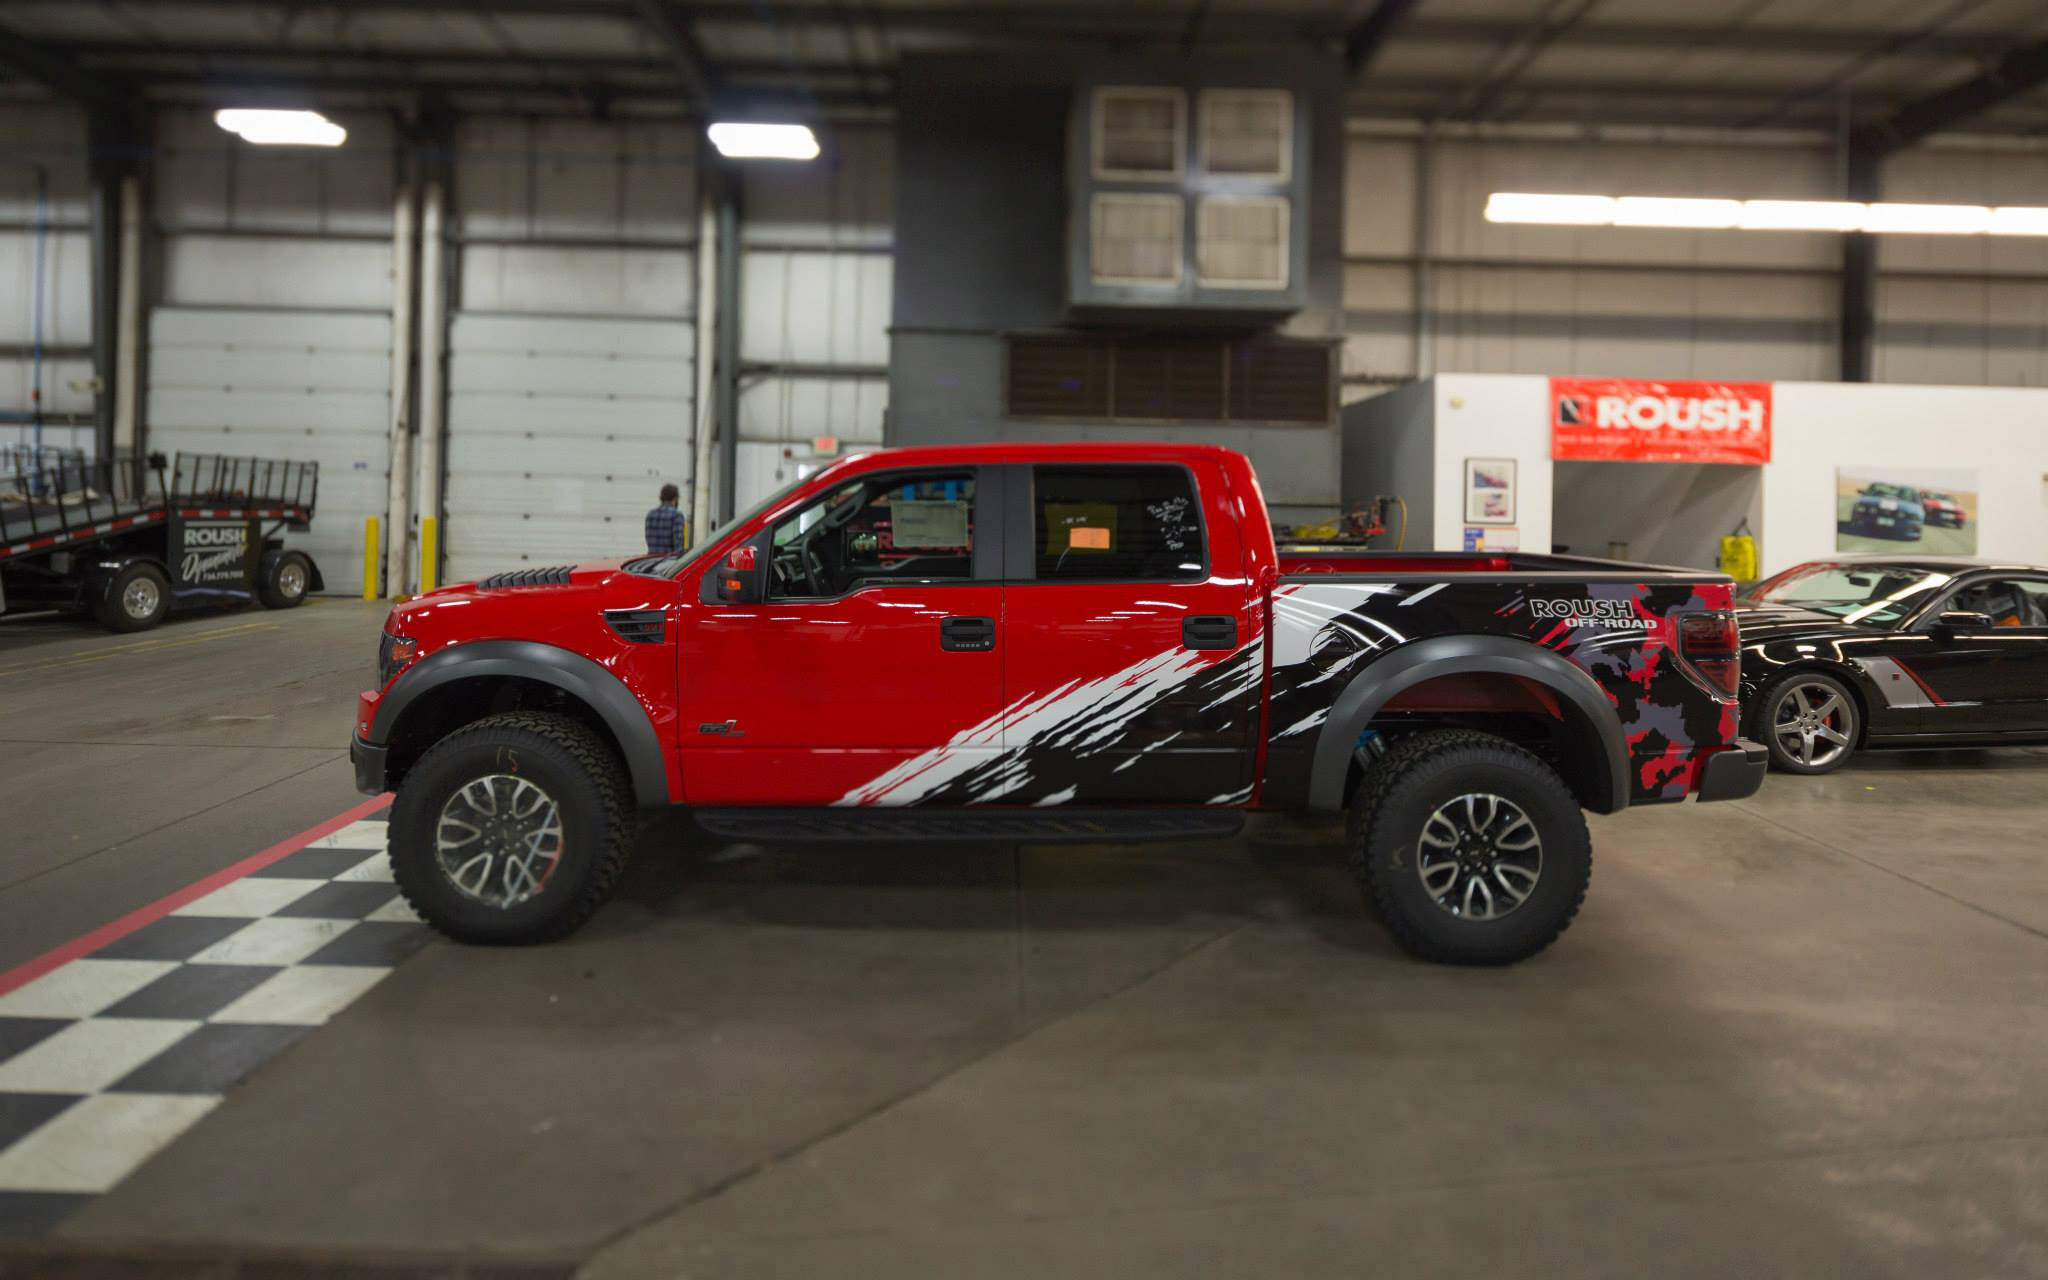 Ford Raptor Roush Price 2014 Chevy Raptor Related Posts 2014 Ford Raptor Price And Specs ...